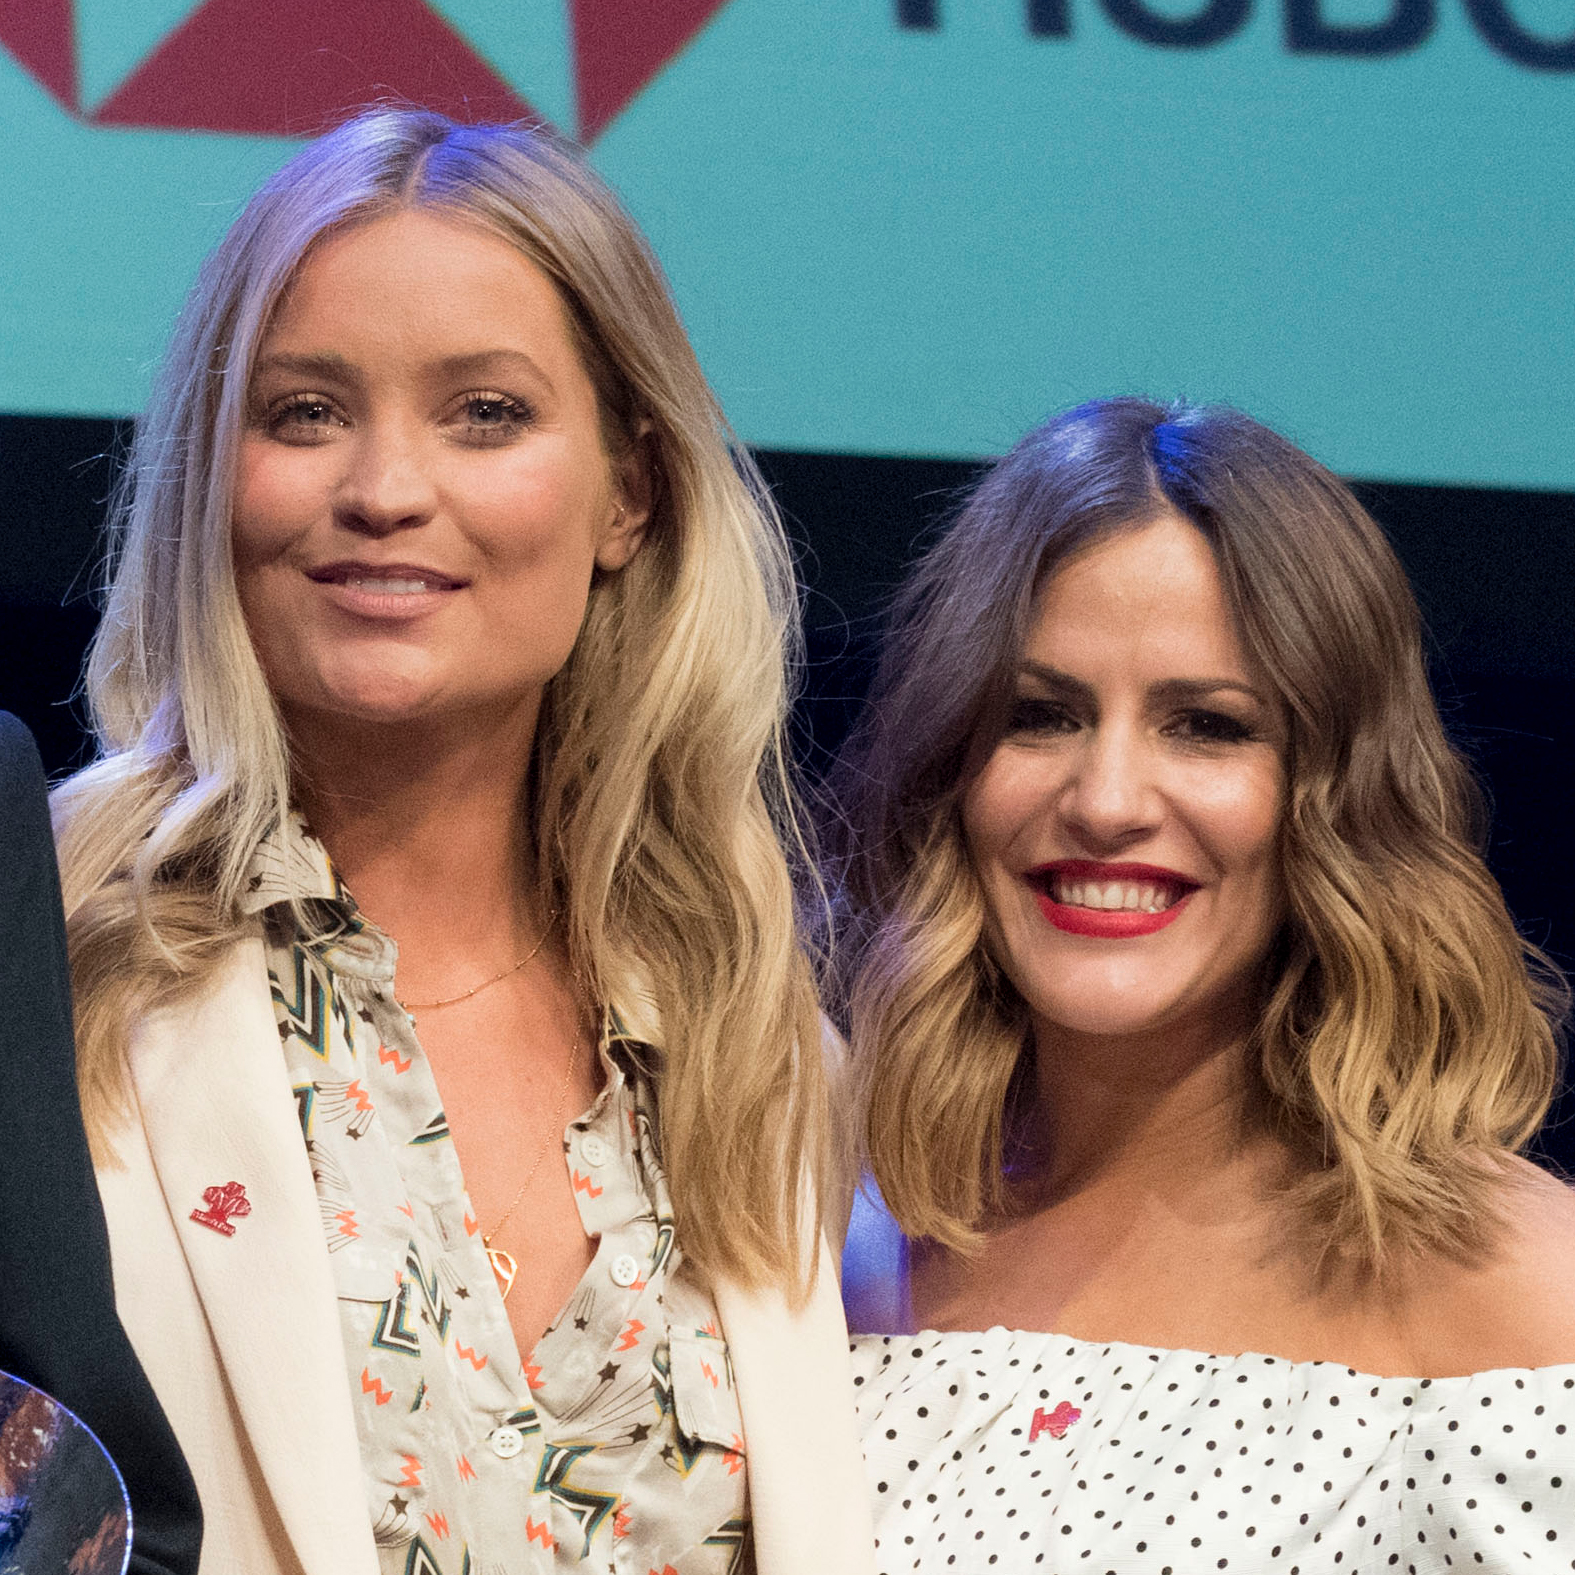 Laura Whitmore and Caroline Flack met ten years ago at V Festival